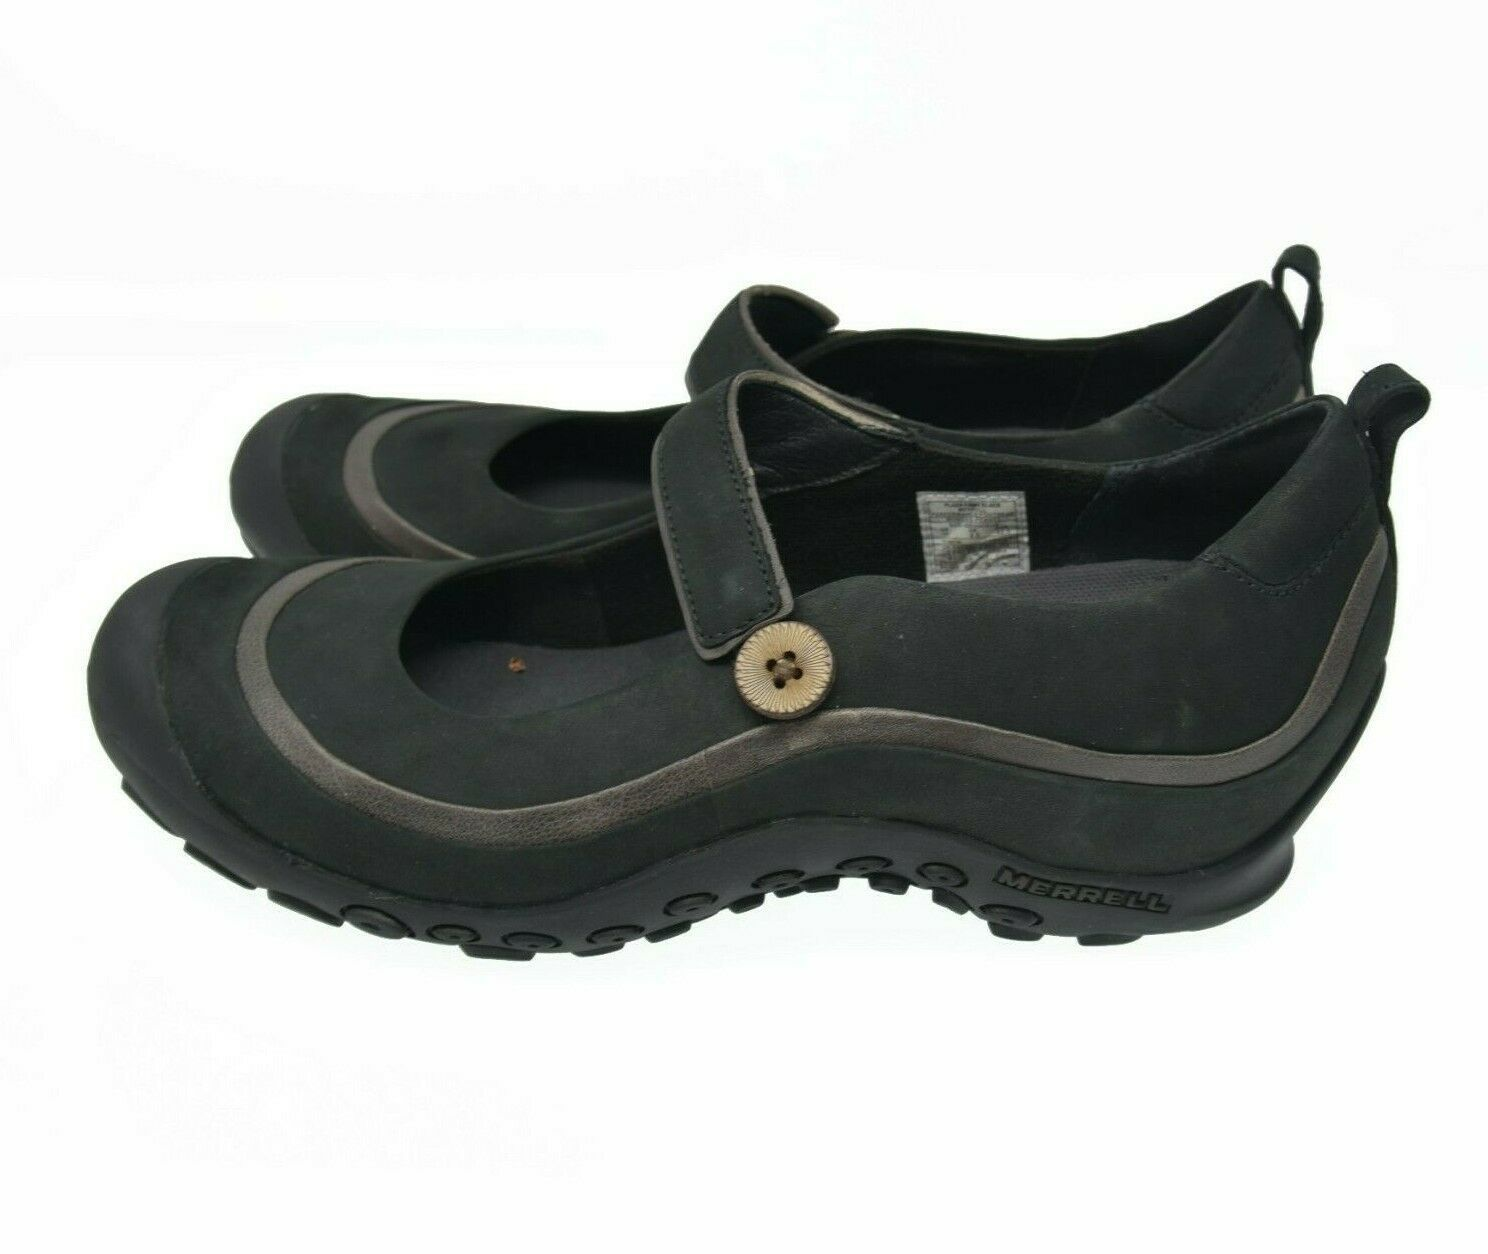 Merrell Women's Sz 11 EU 42.5 Suede Leather Button Strap Mary Jane Comfort Shoes